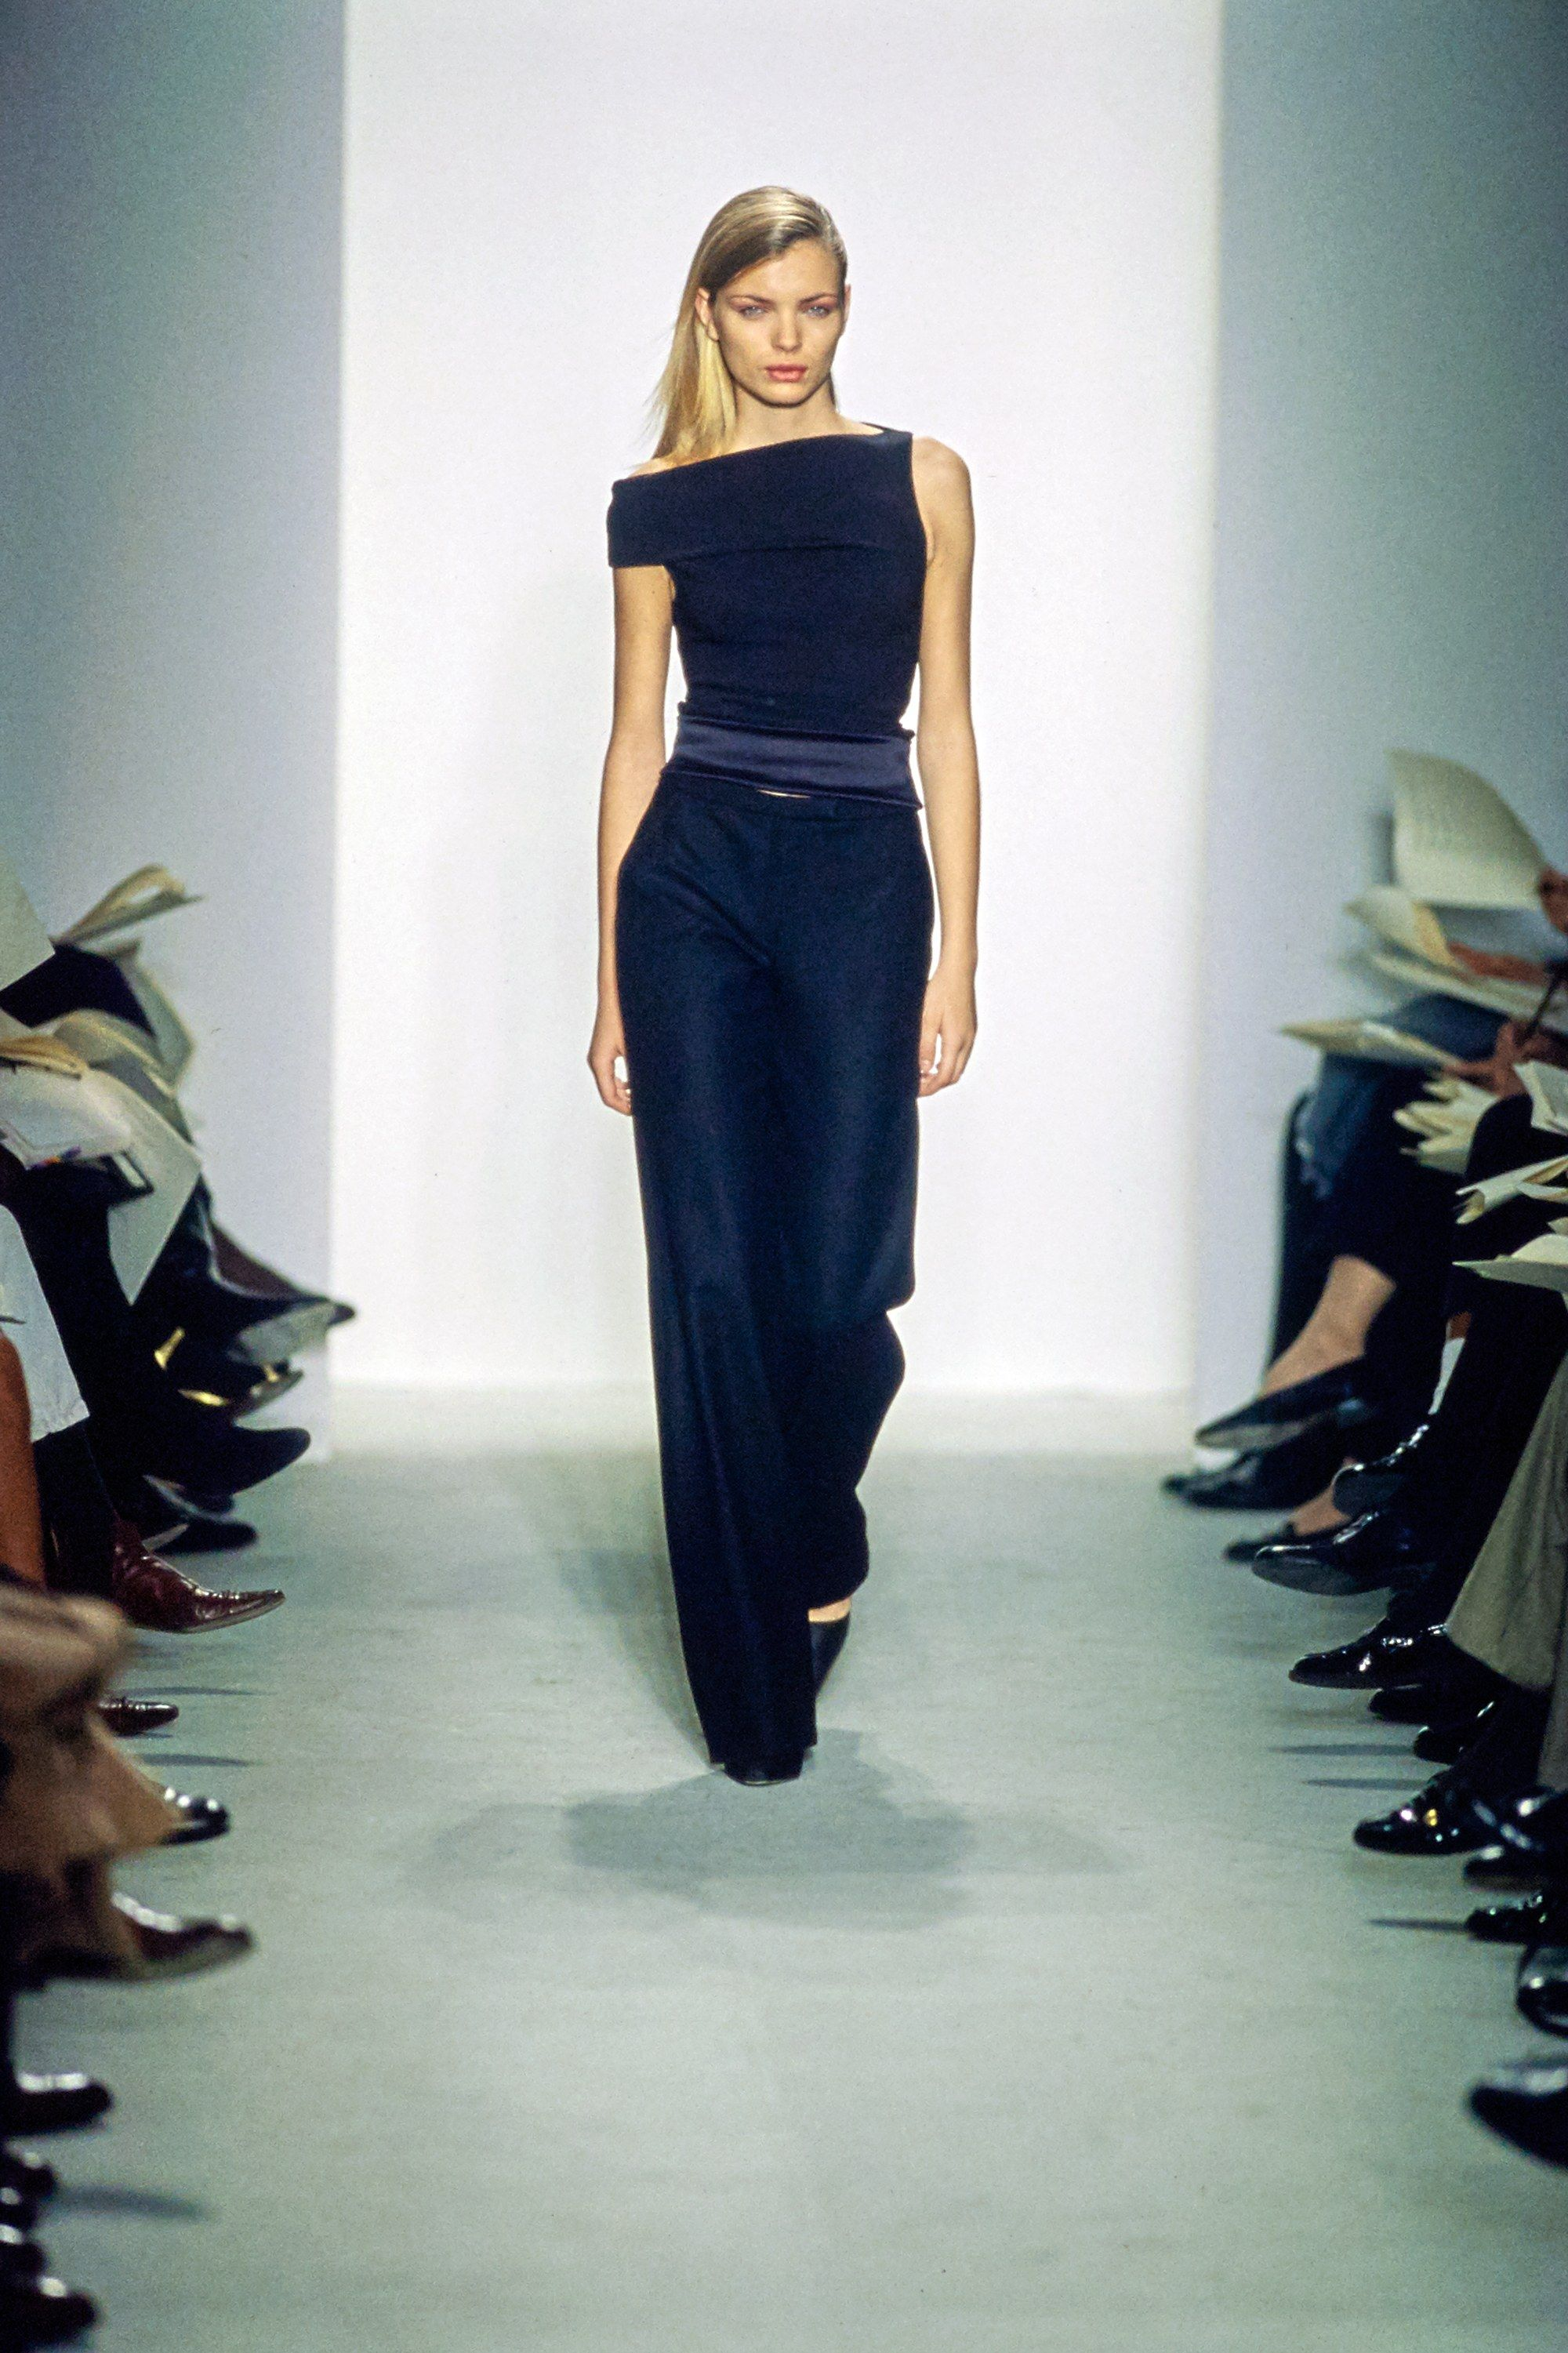 6aac7fcbe4 See the complete Calvin Klein Fall 1997 collection and 9 more Calvin Klein  shows from the '90s.